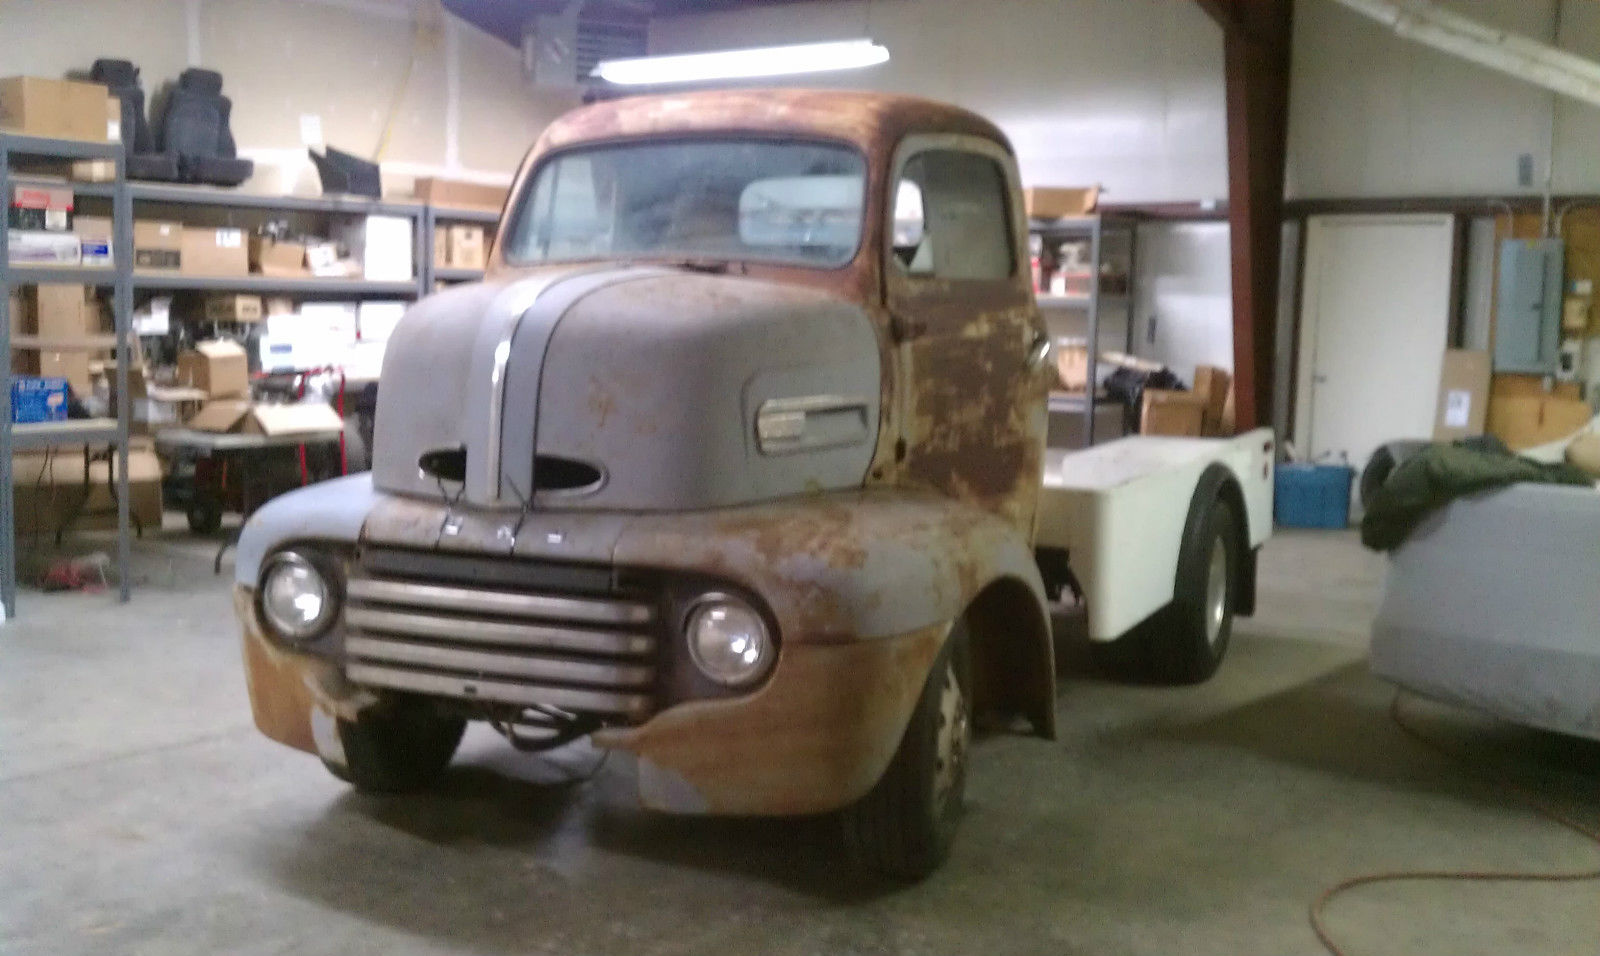 1949 Ford F5 Coe Project With 454 Engine On 1985 P30 Chevy Chassis Step Van